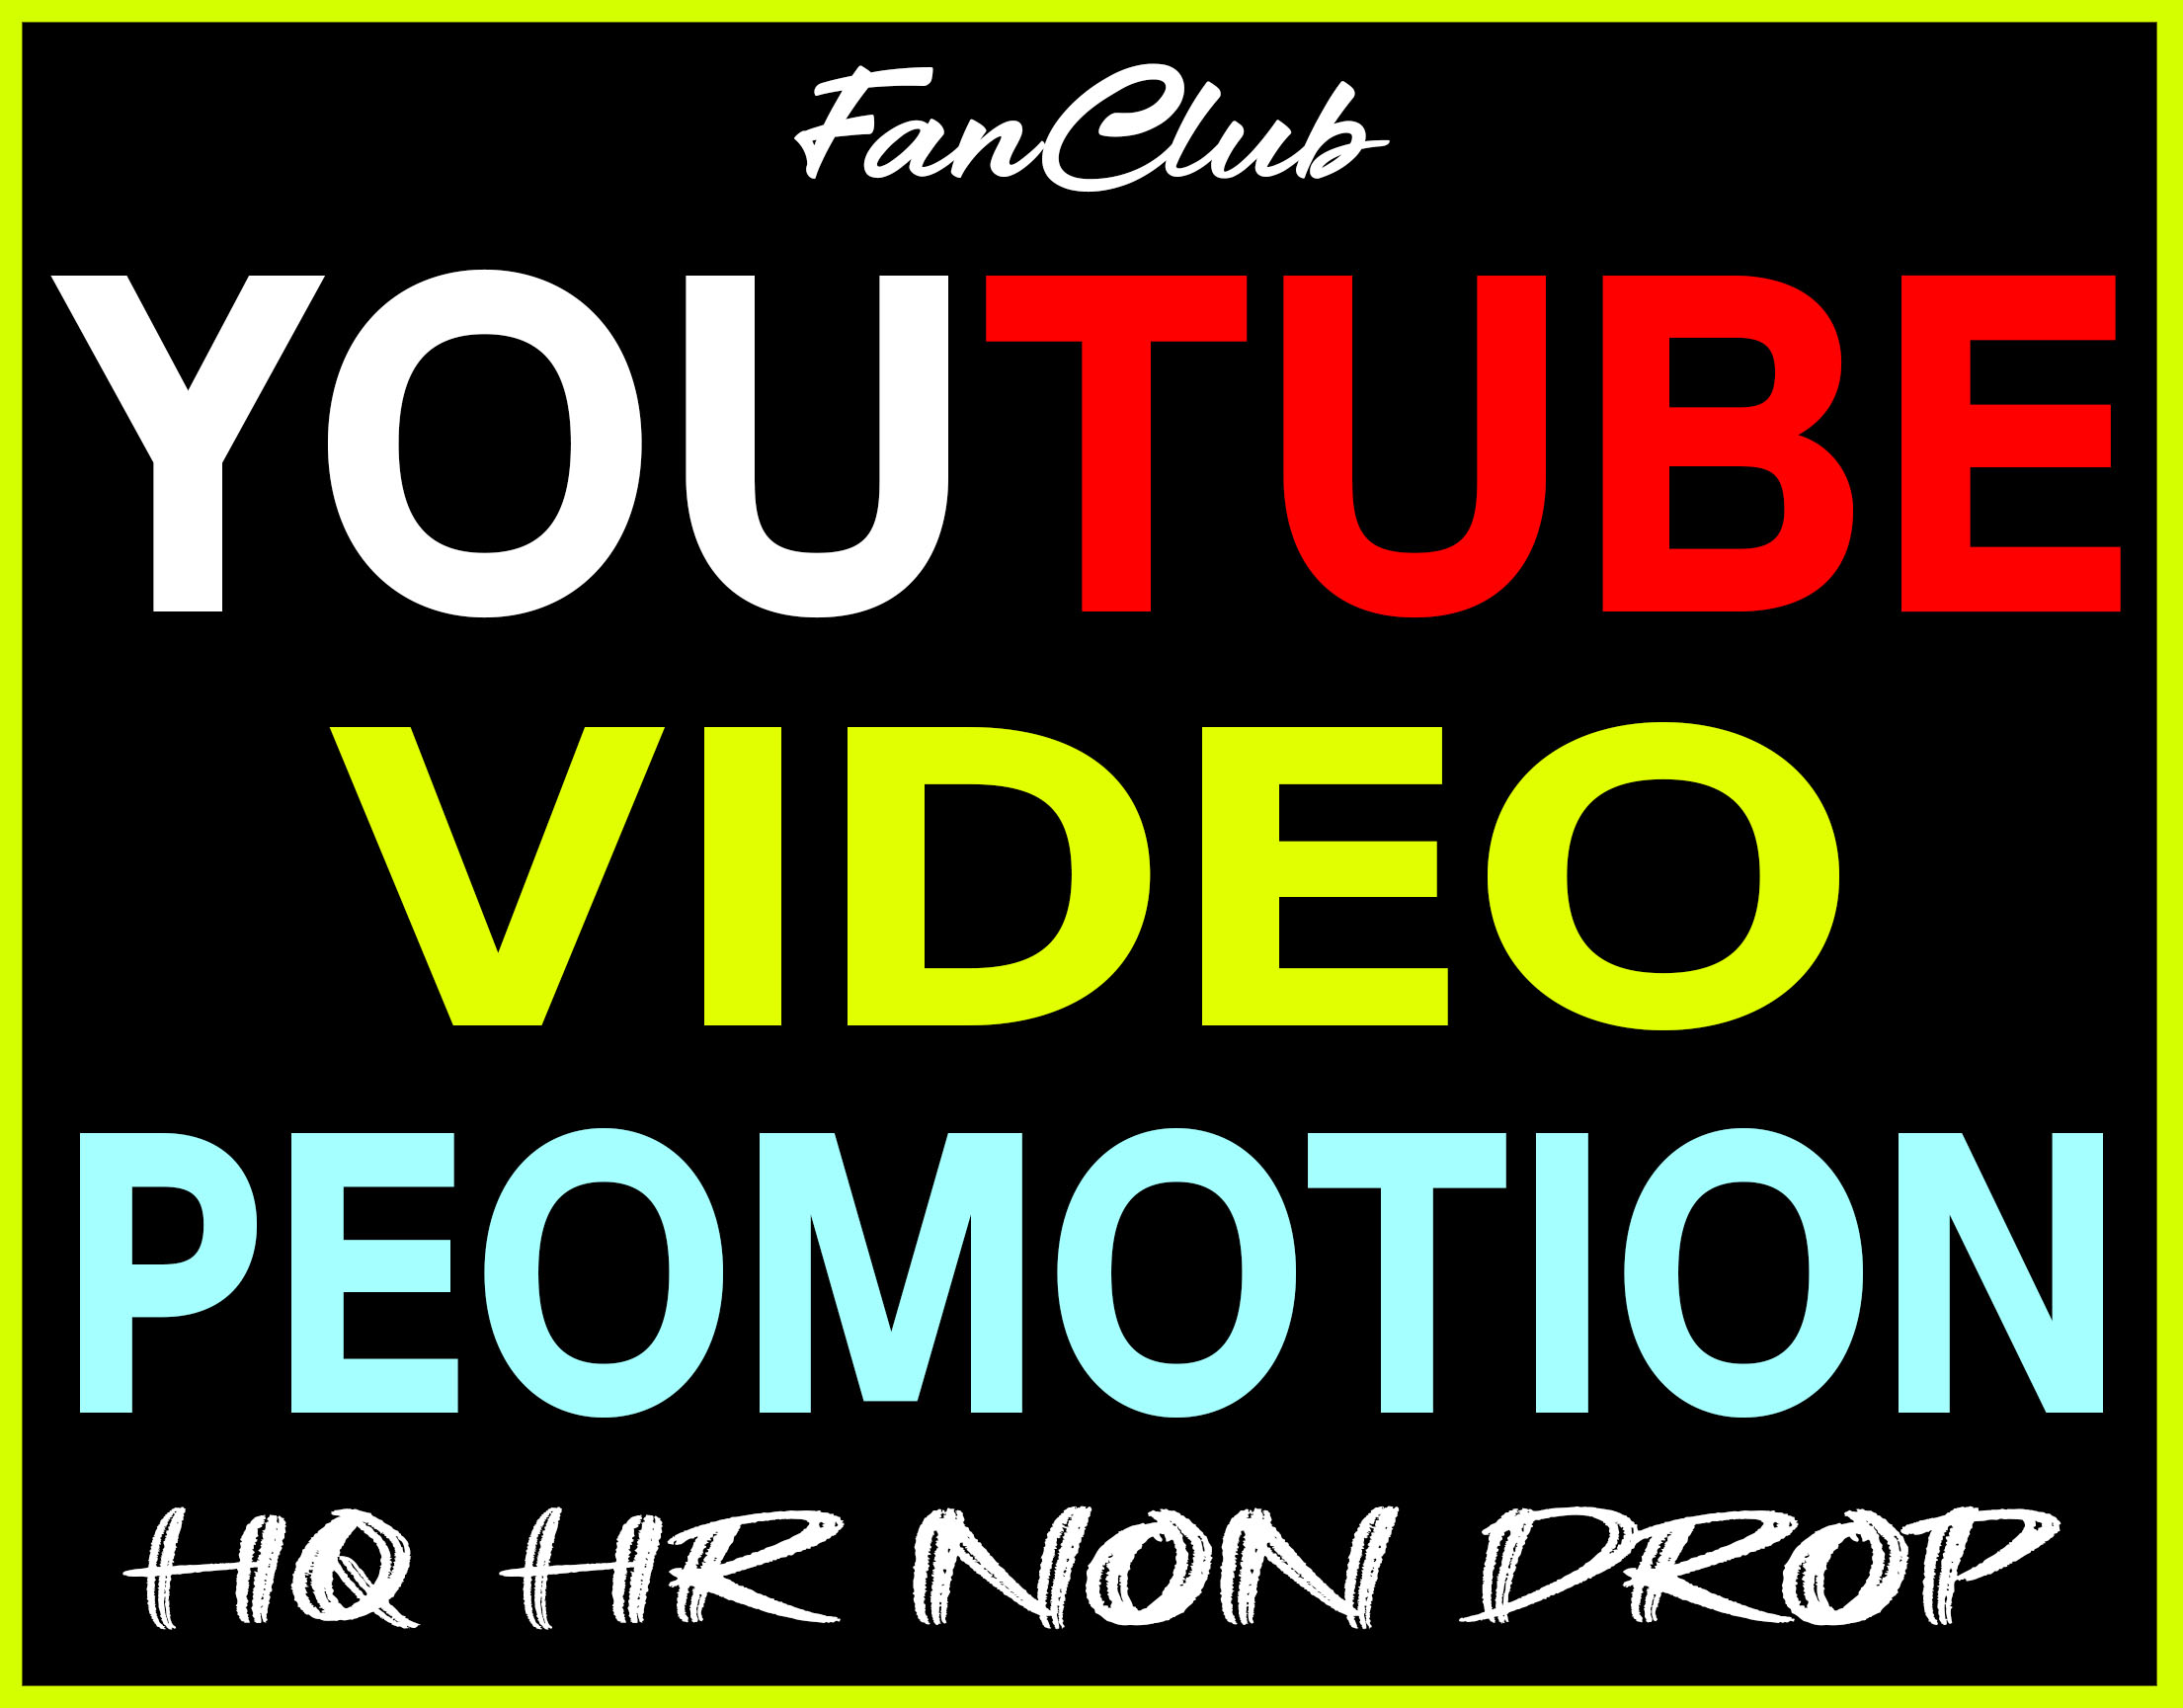 YouTube Video HQ Promotion + Marketing Good For Ranking